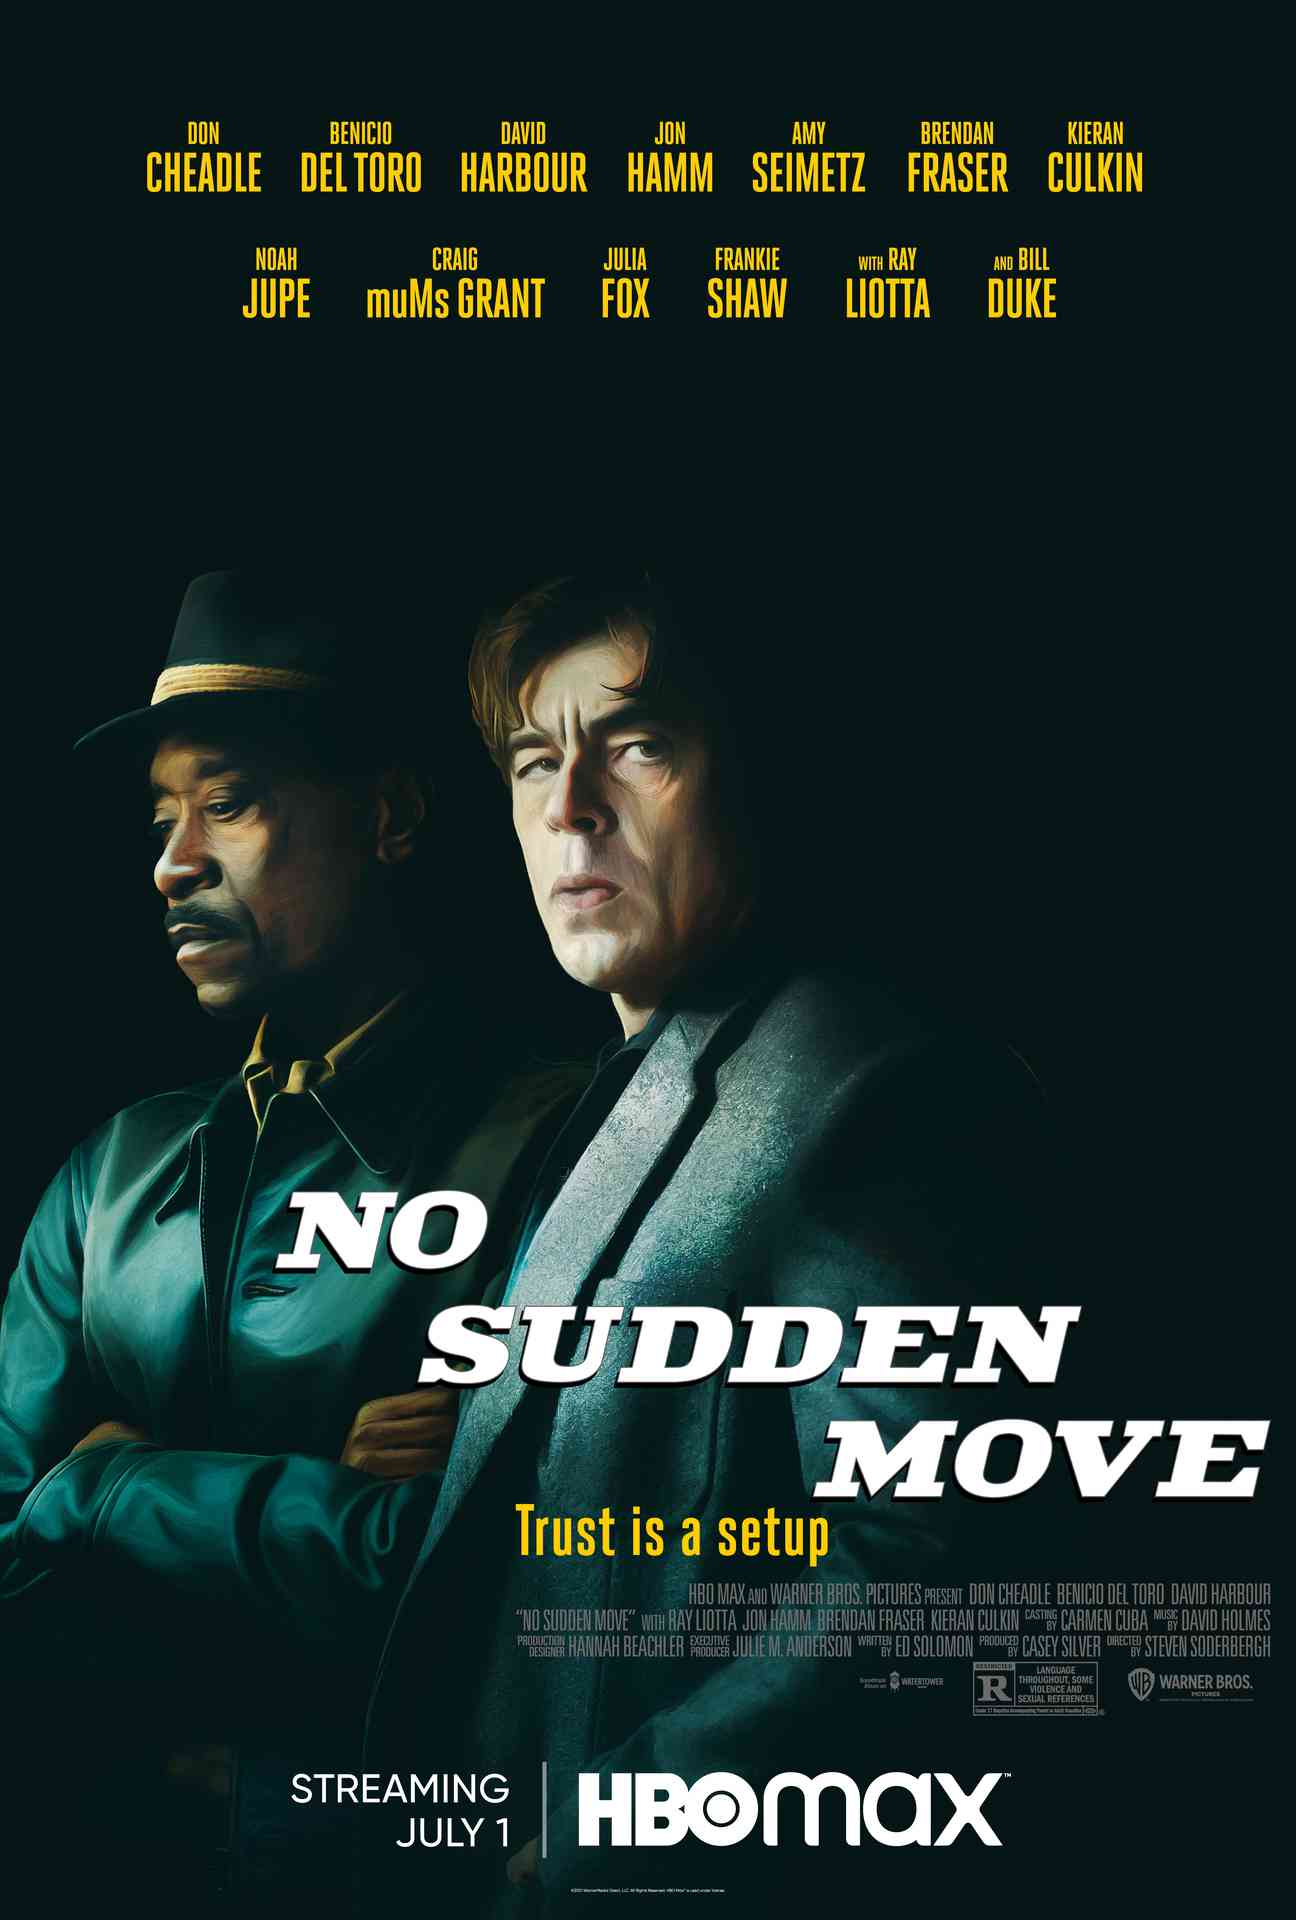 No Sudden Move Trailer and Poster